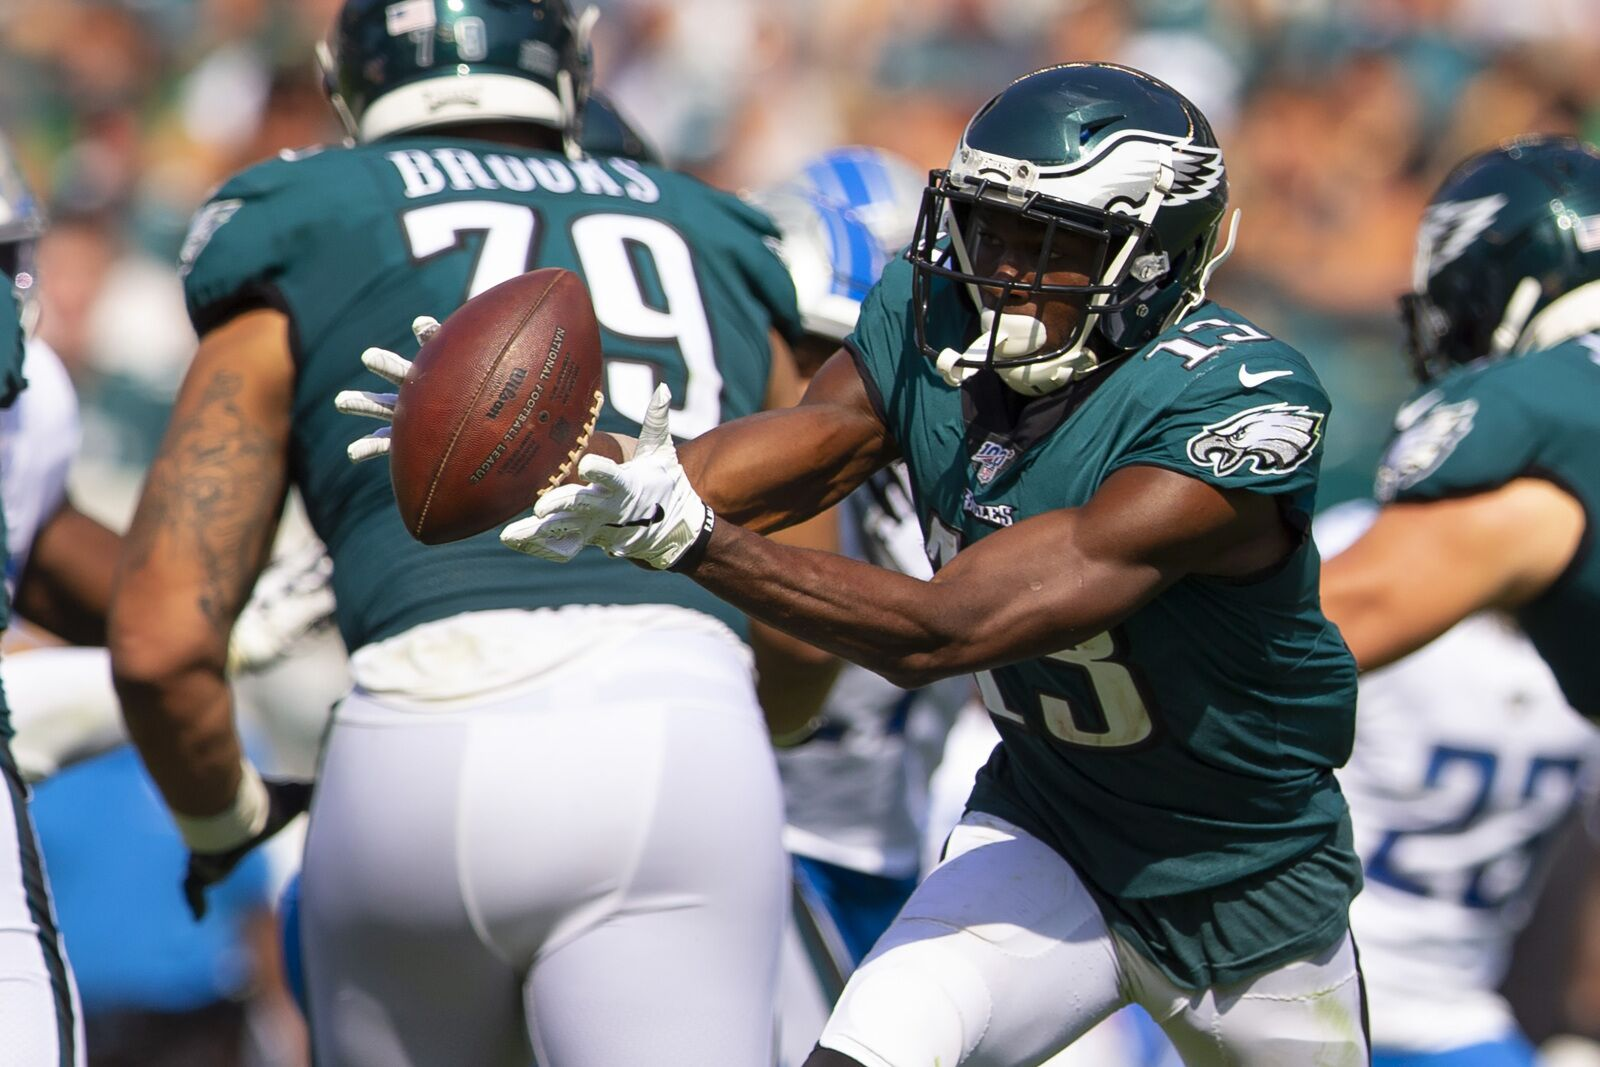 Philadelphia Eagles: 6 Players who stood out for better or for worse vs. Lions